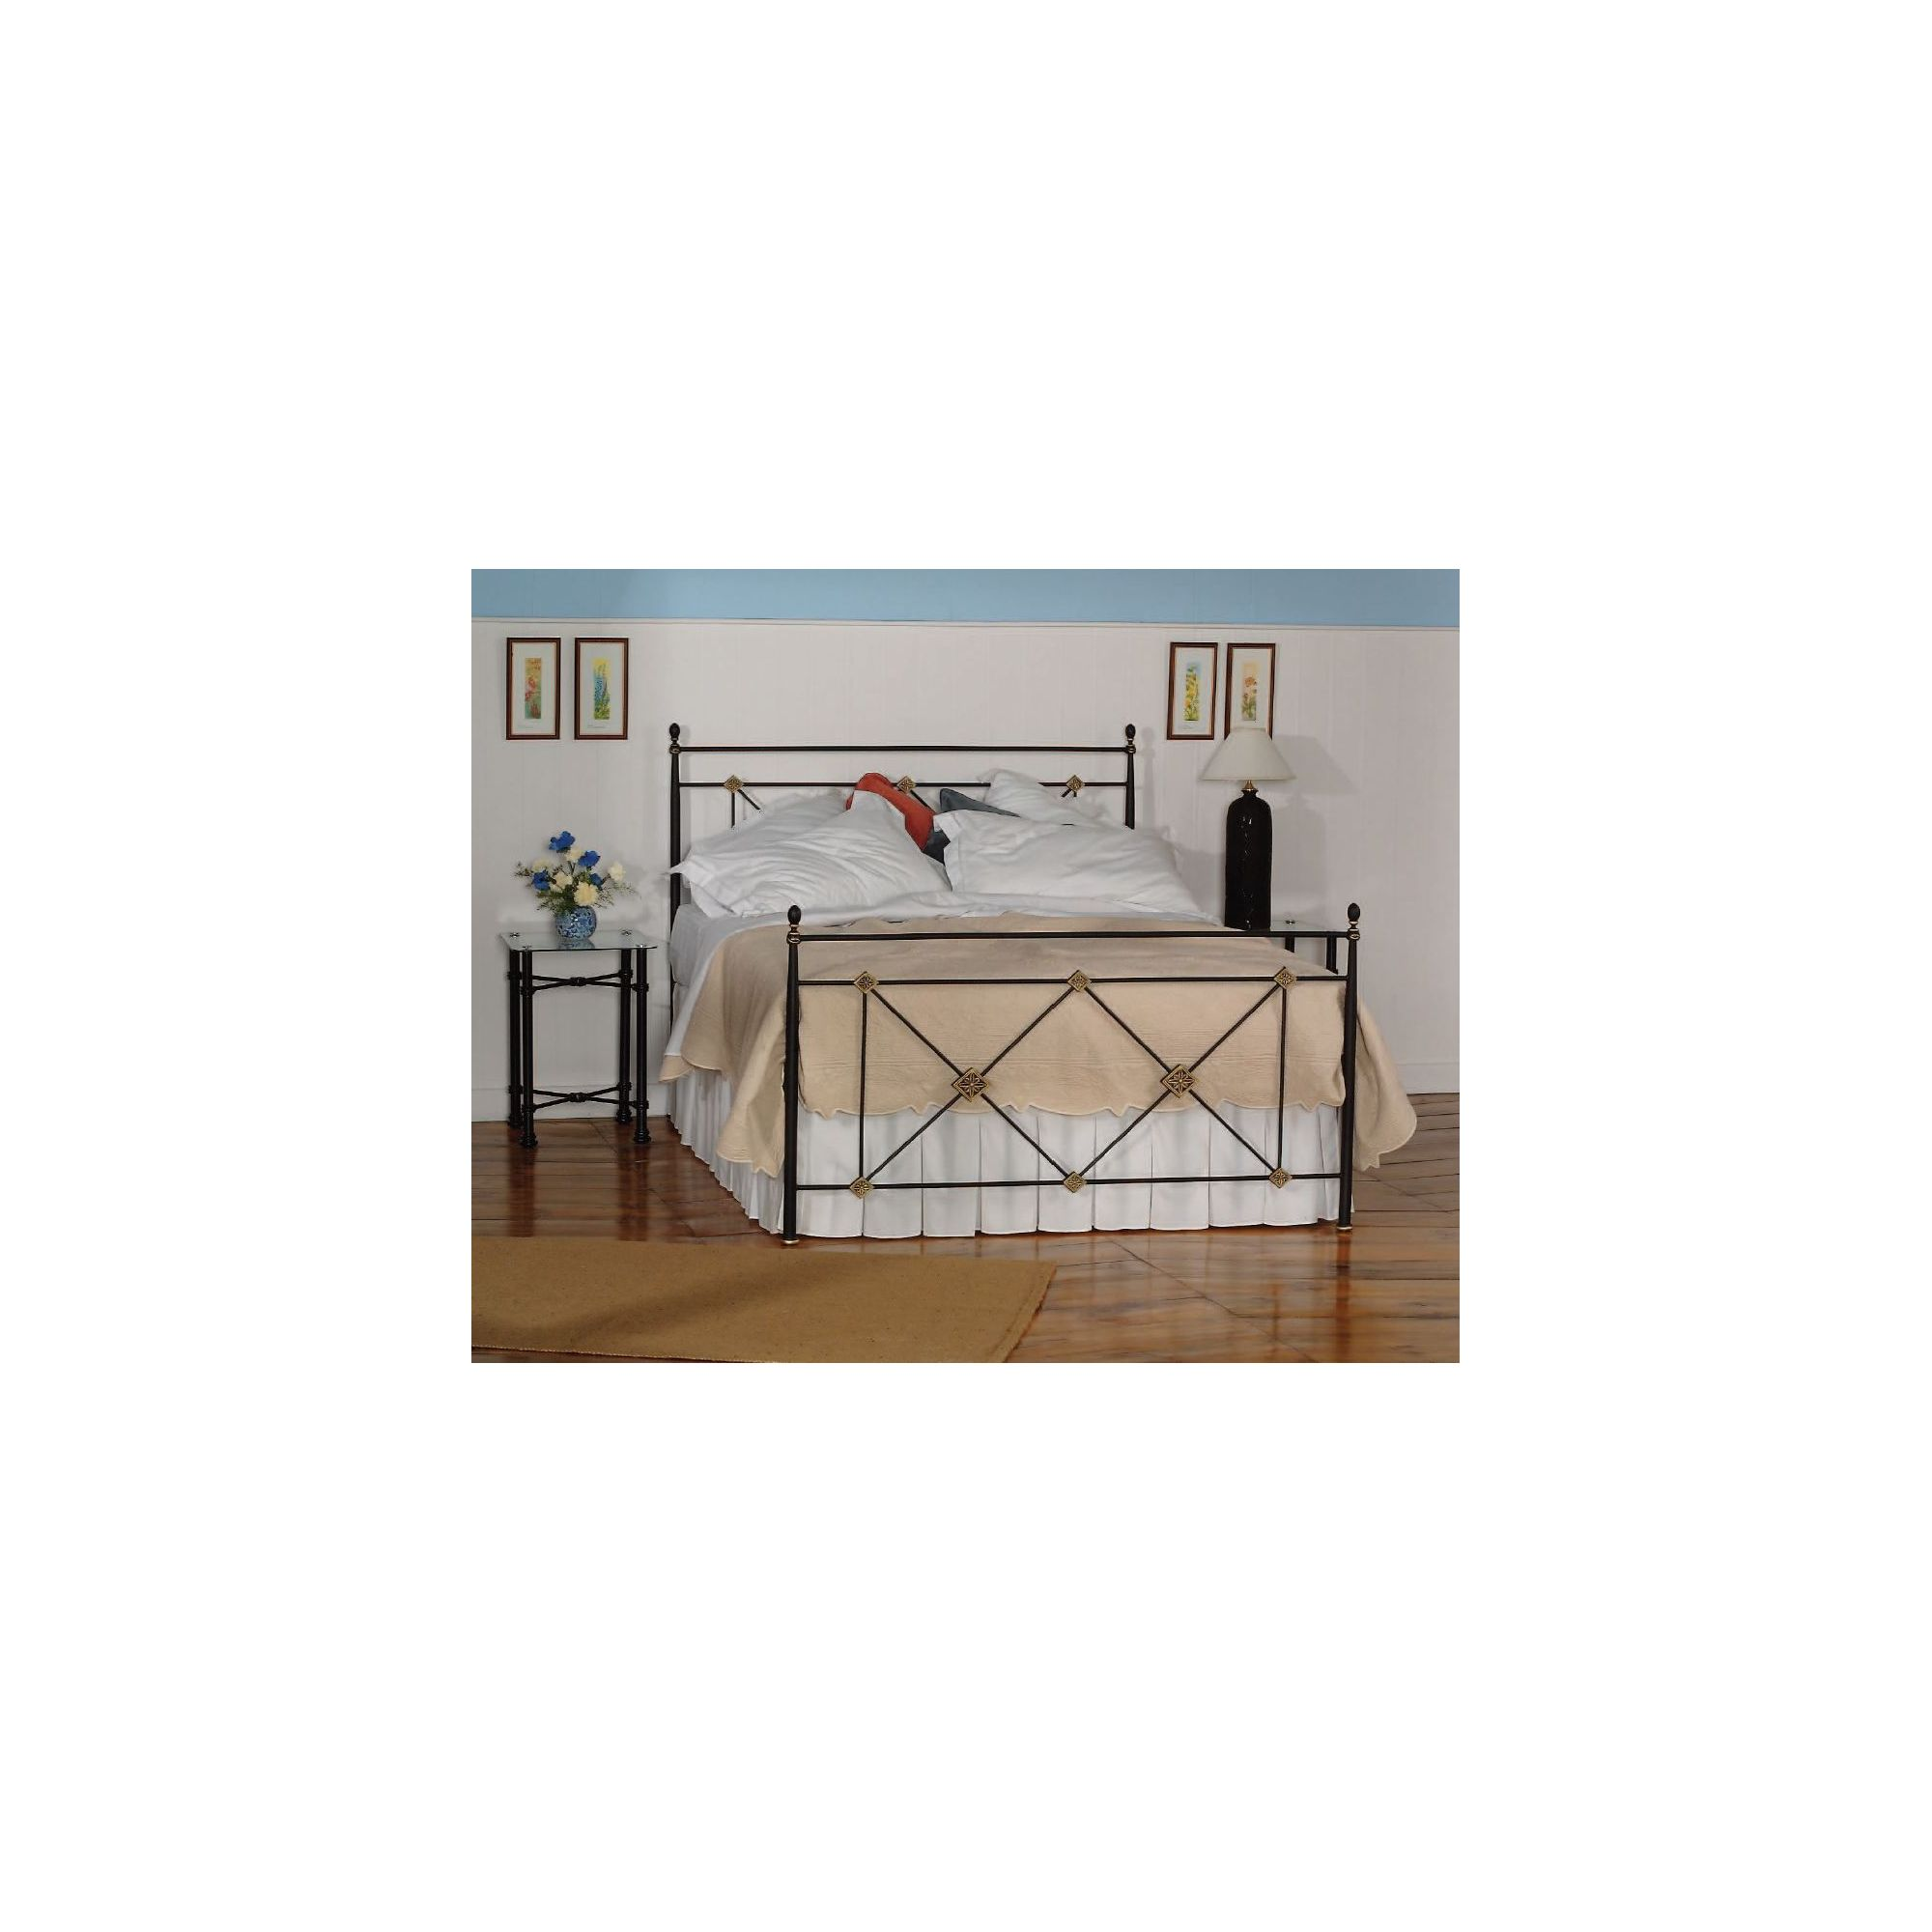 OBC Maine Bed Frame - Double - Glossy Ivory at Tescos Direct